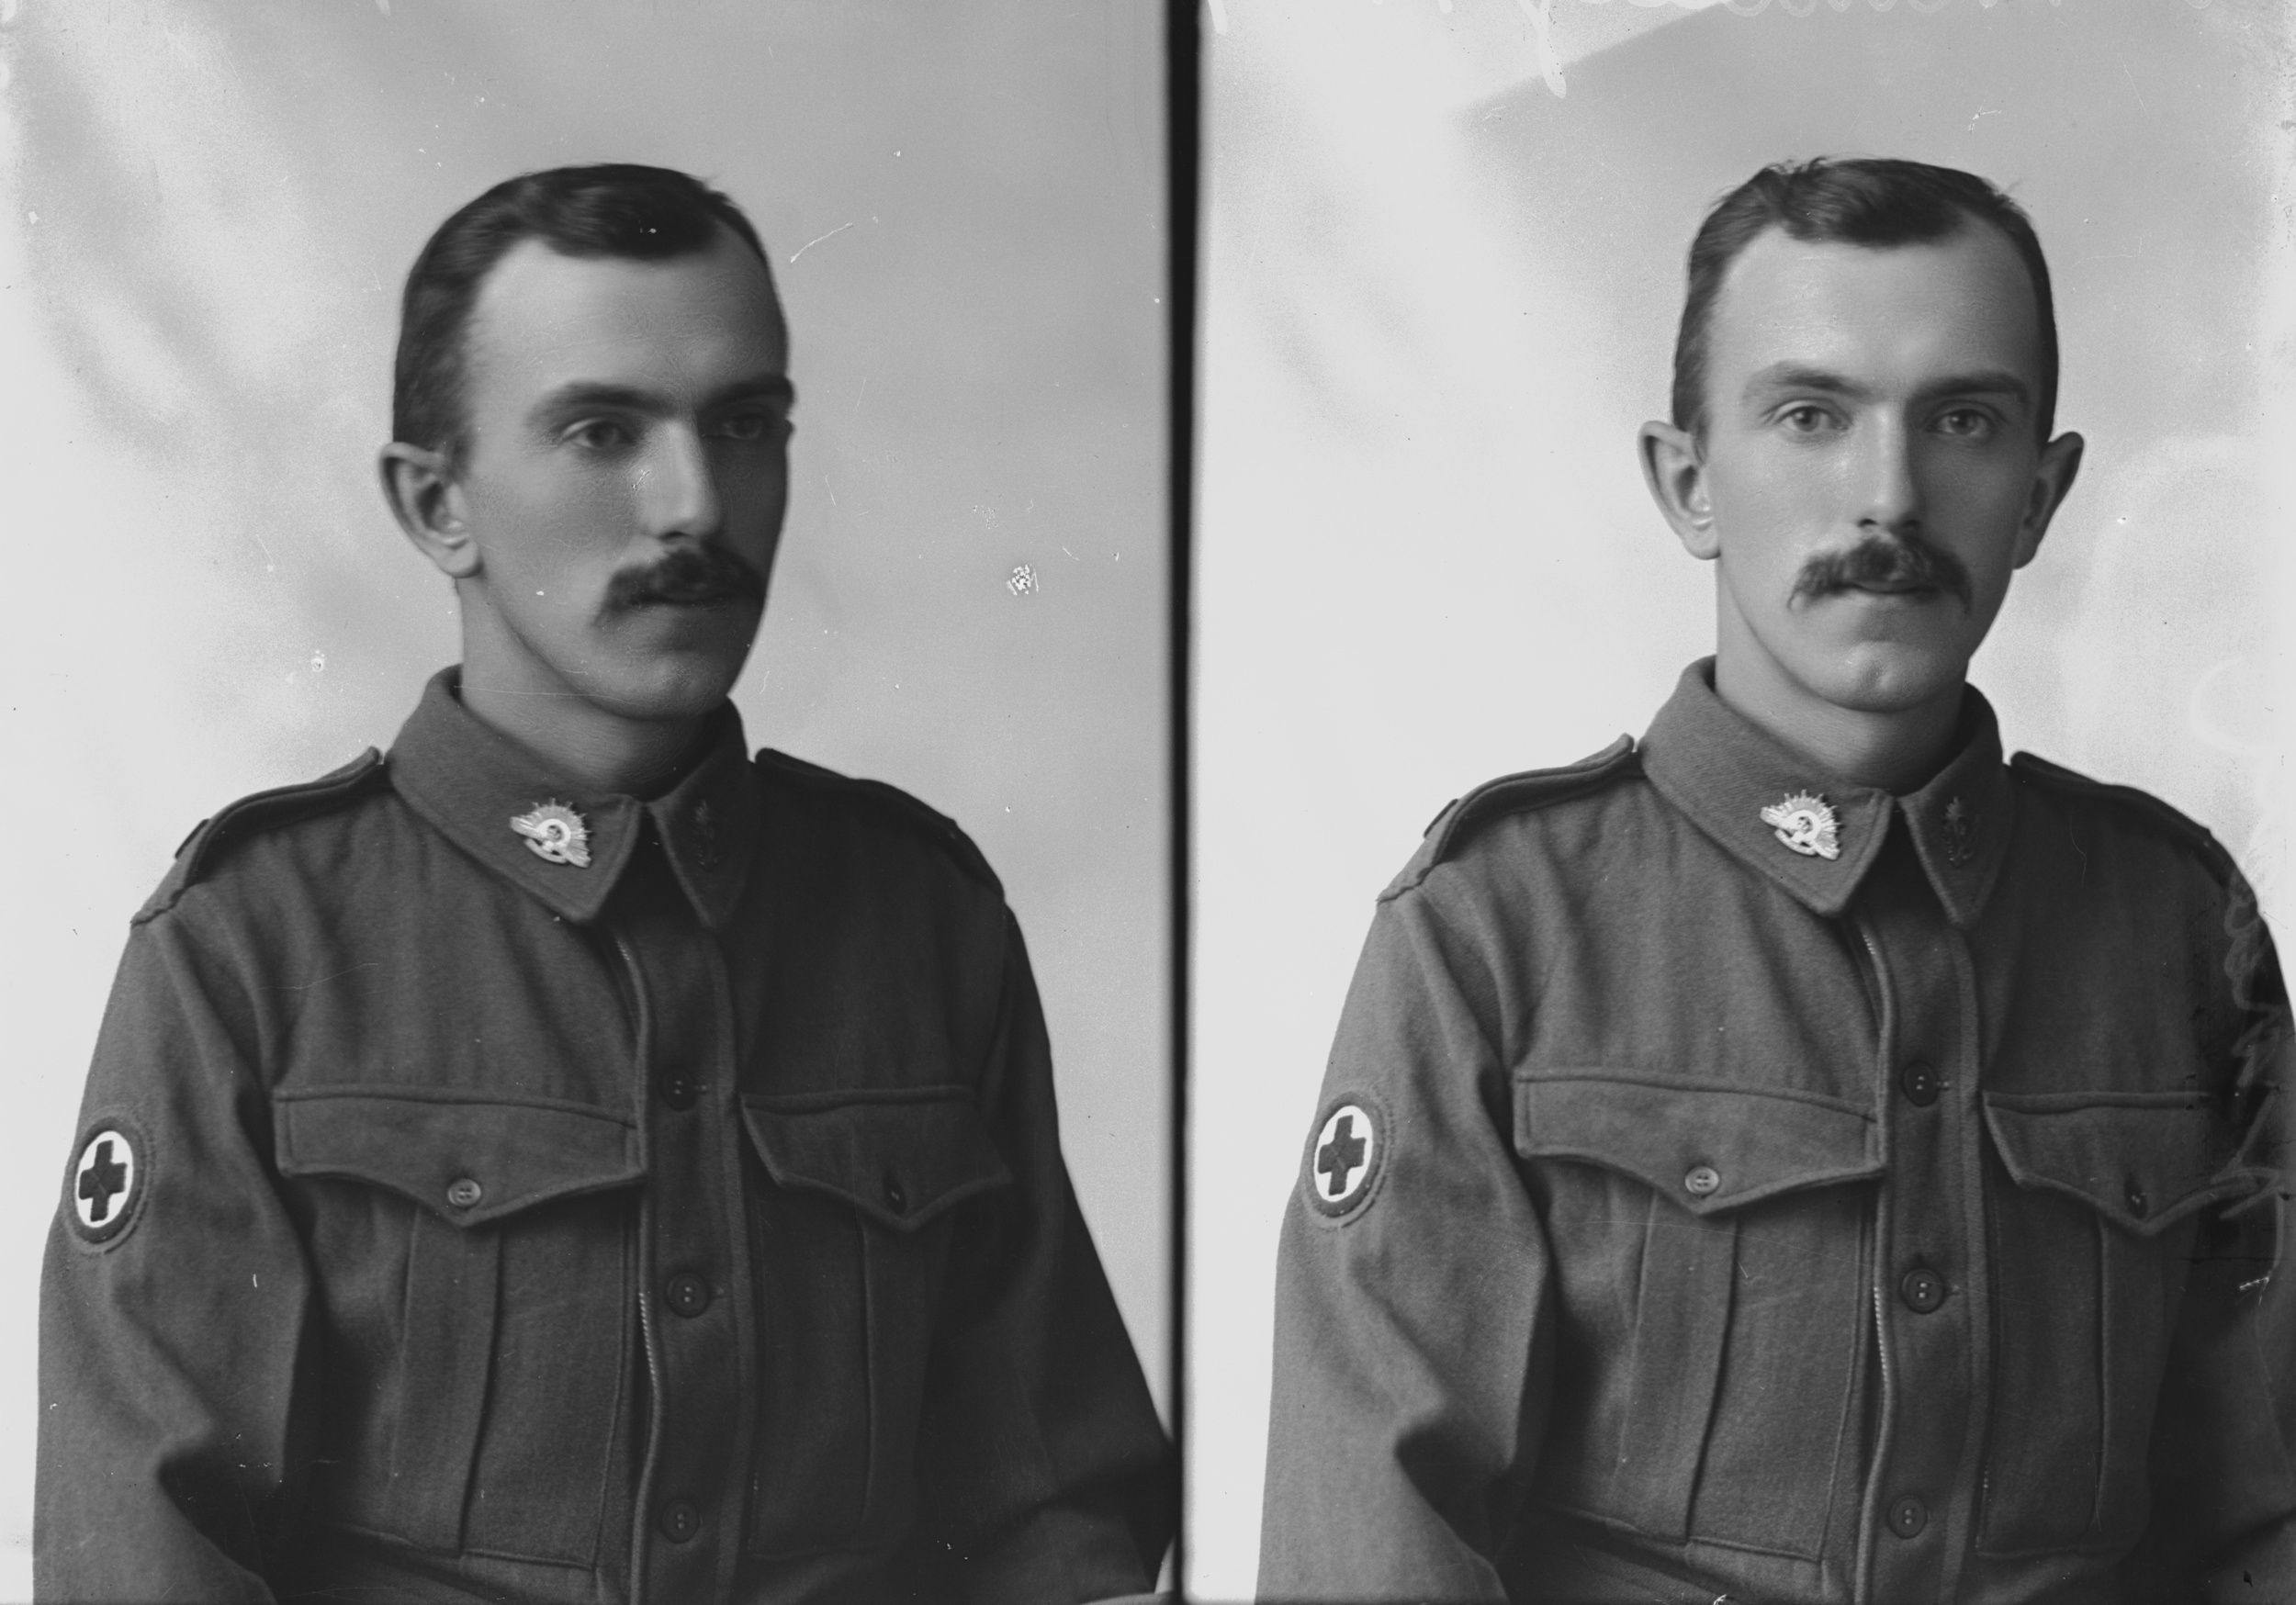 Photographed at the Dease Studio, 117 Barrack Street Perth WA Image courtesy of the State Library of Western Australia: 108548PD